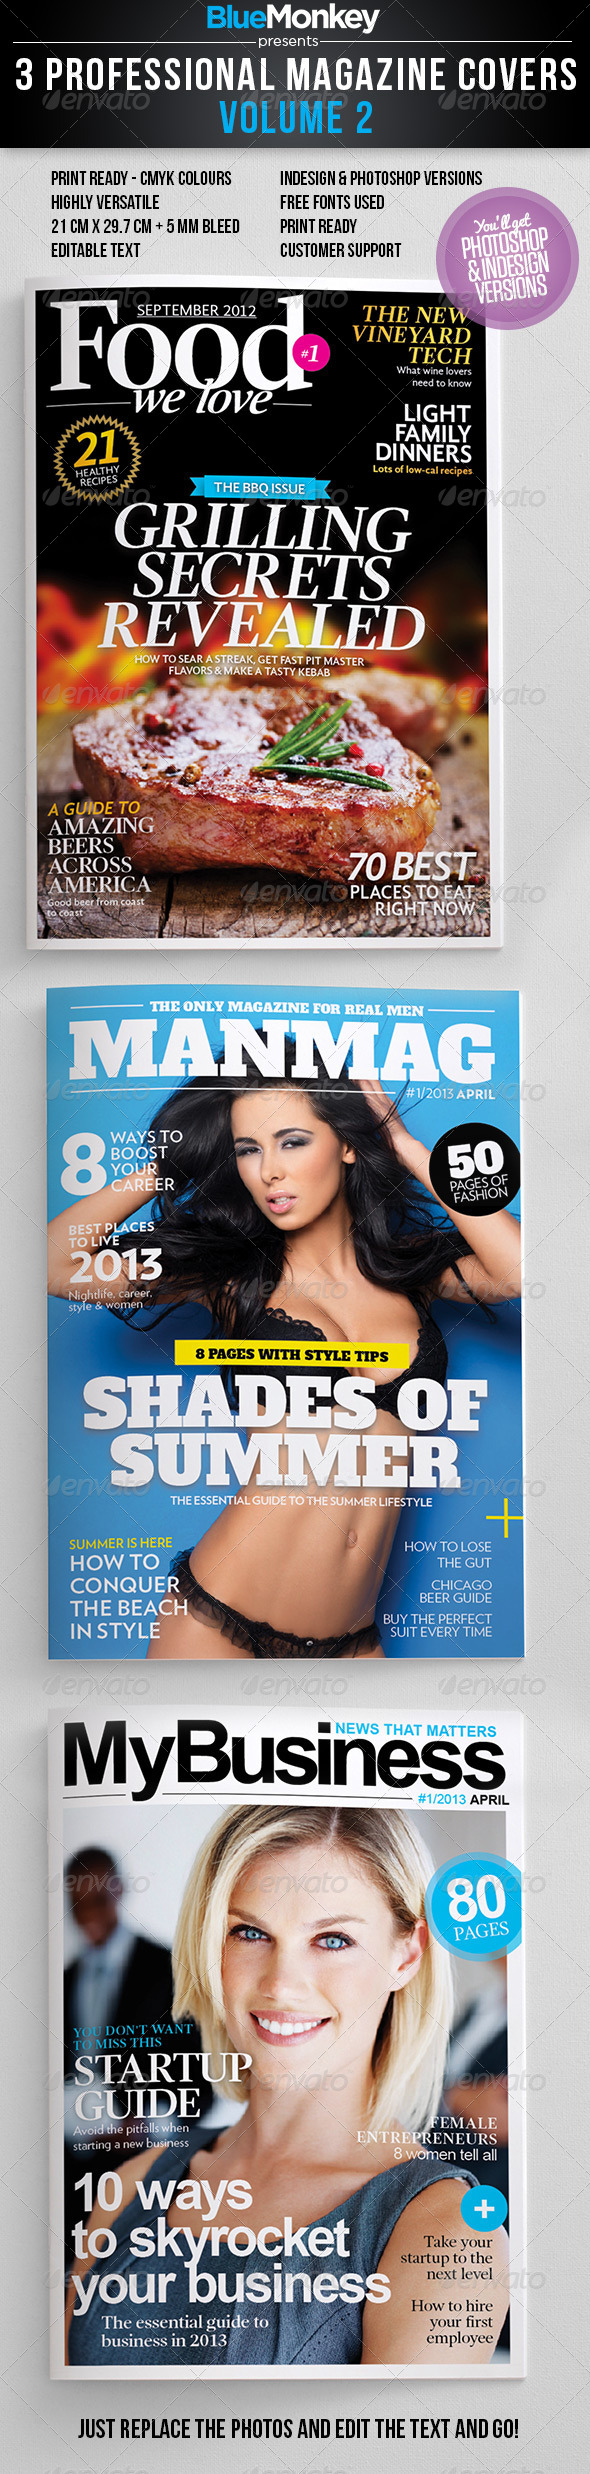 3 Professional Magazine Covers - Vol. 2 - Magazines Print Templates